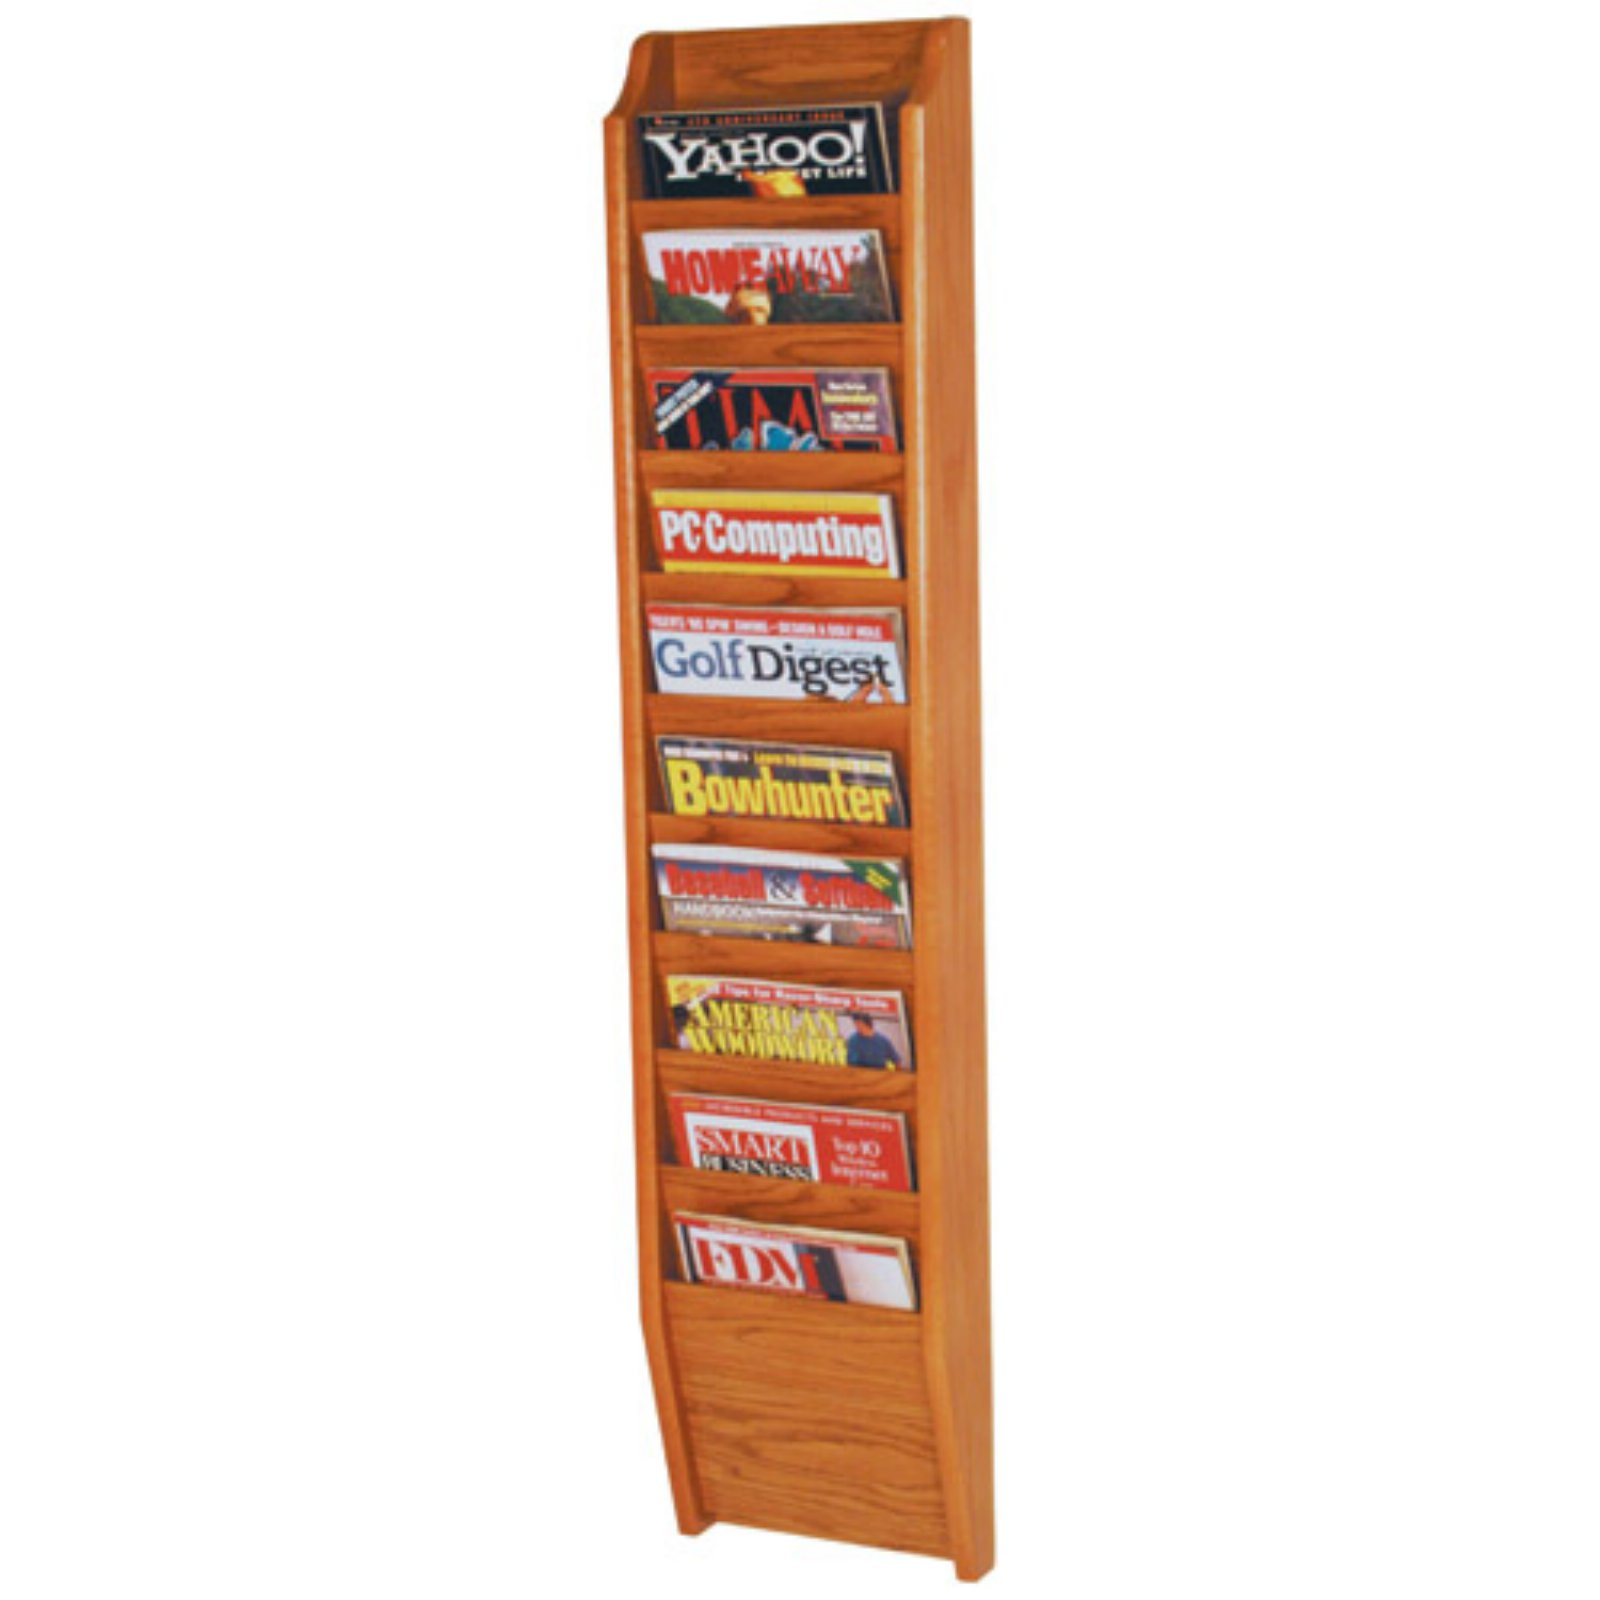 10-Pocket Wall Magazine Rack by Luggage Pros